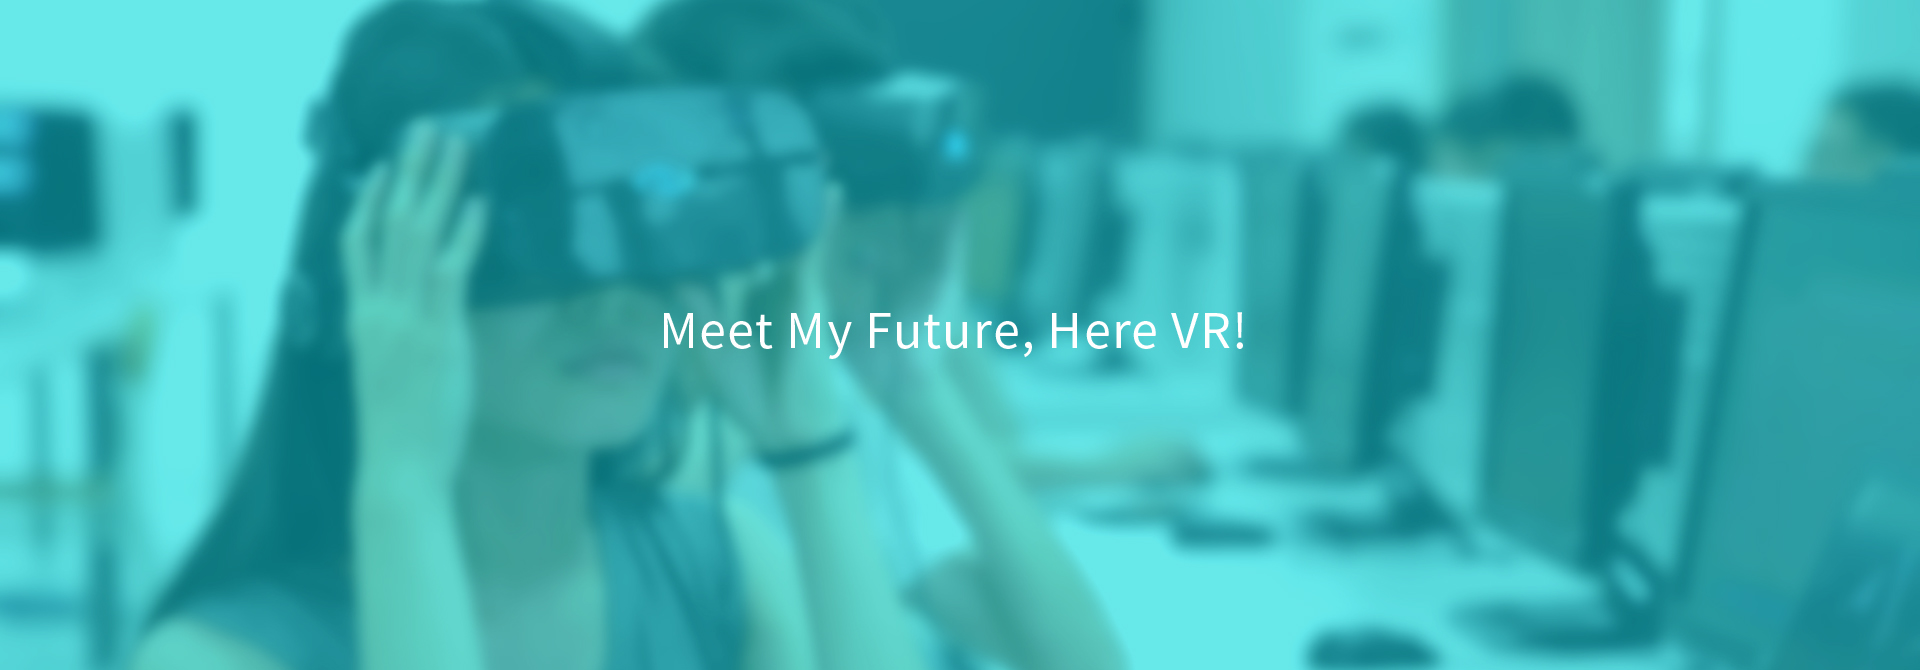 Meet My Future,Here VR!